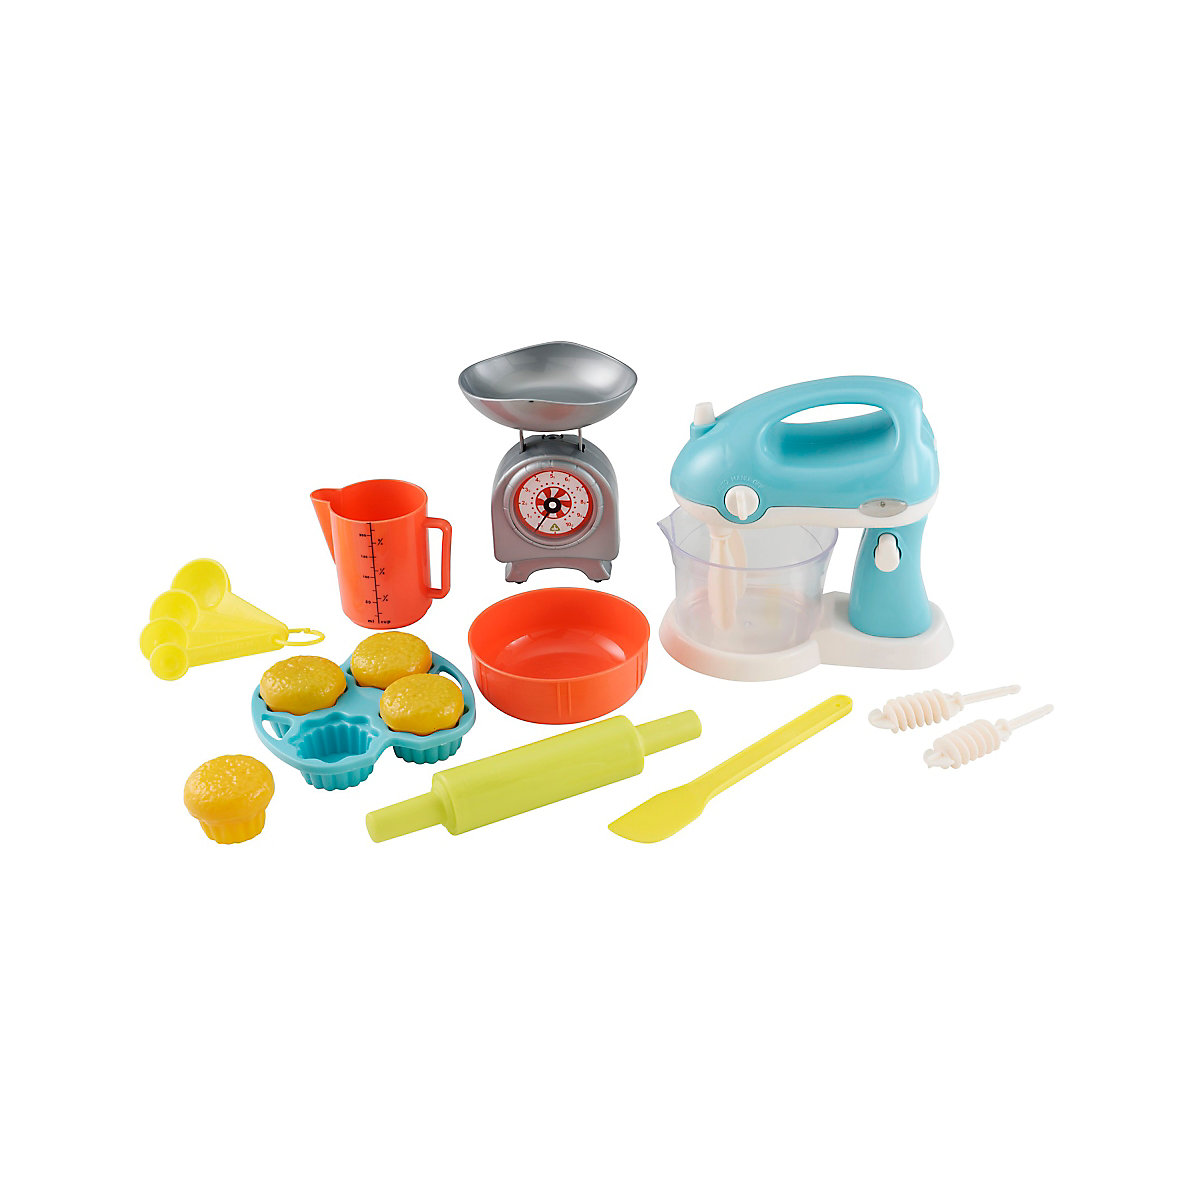 New ELC Boys and Girls Complete Baking Set Toy From 3 years - Dressing Up Gifts